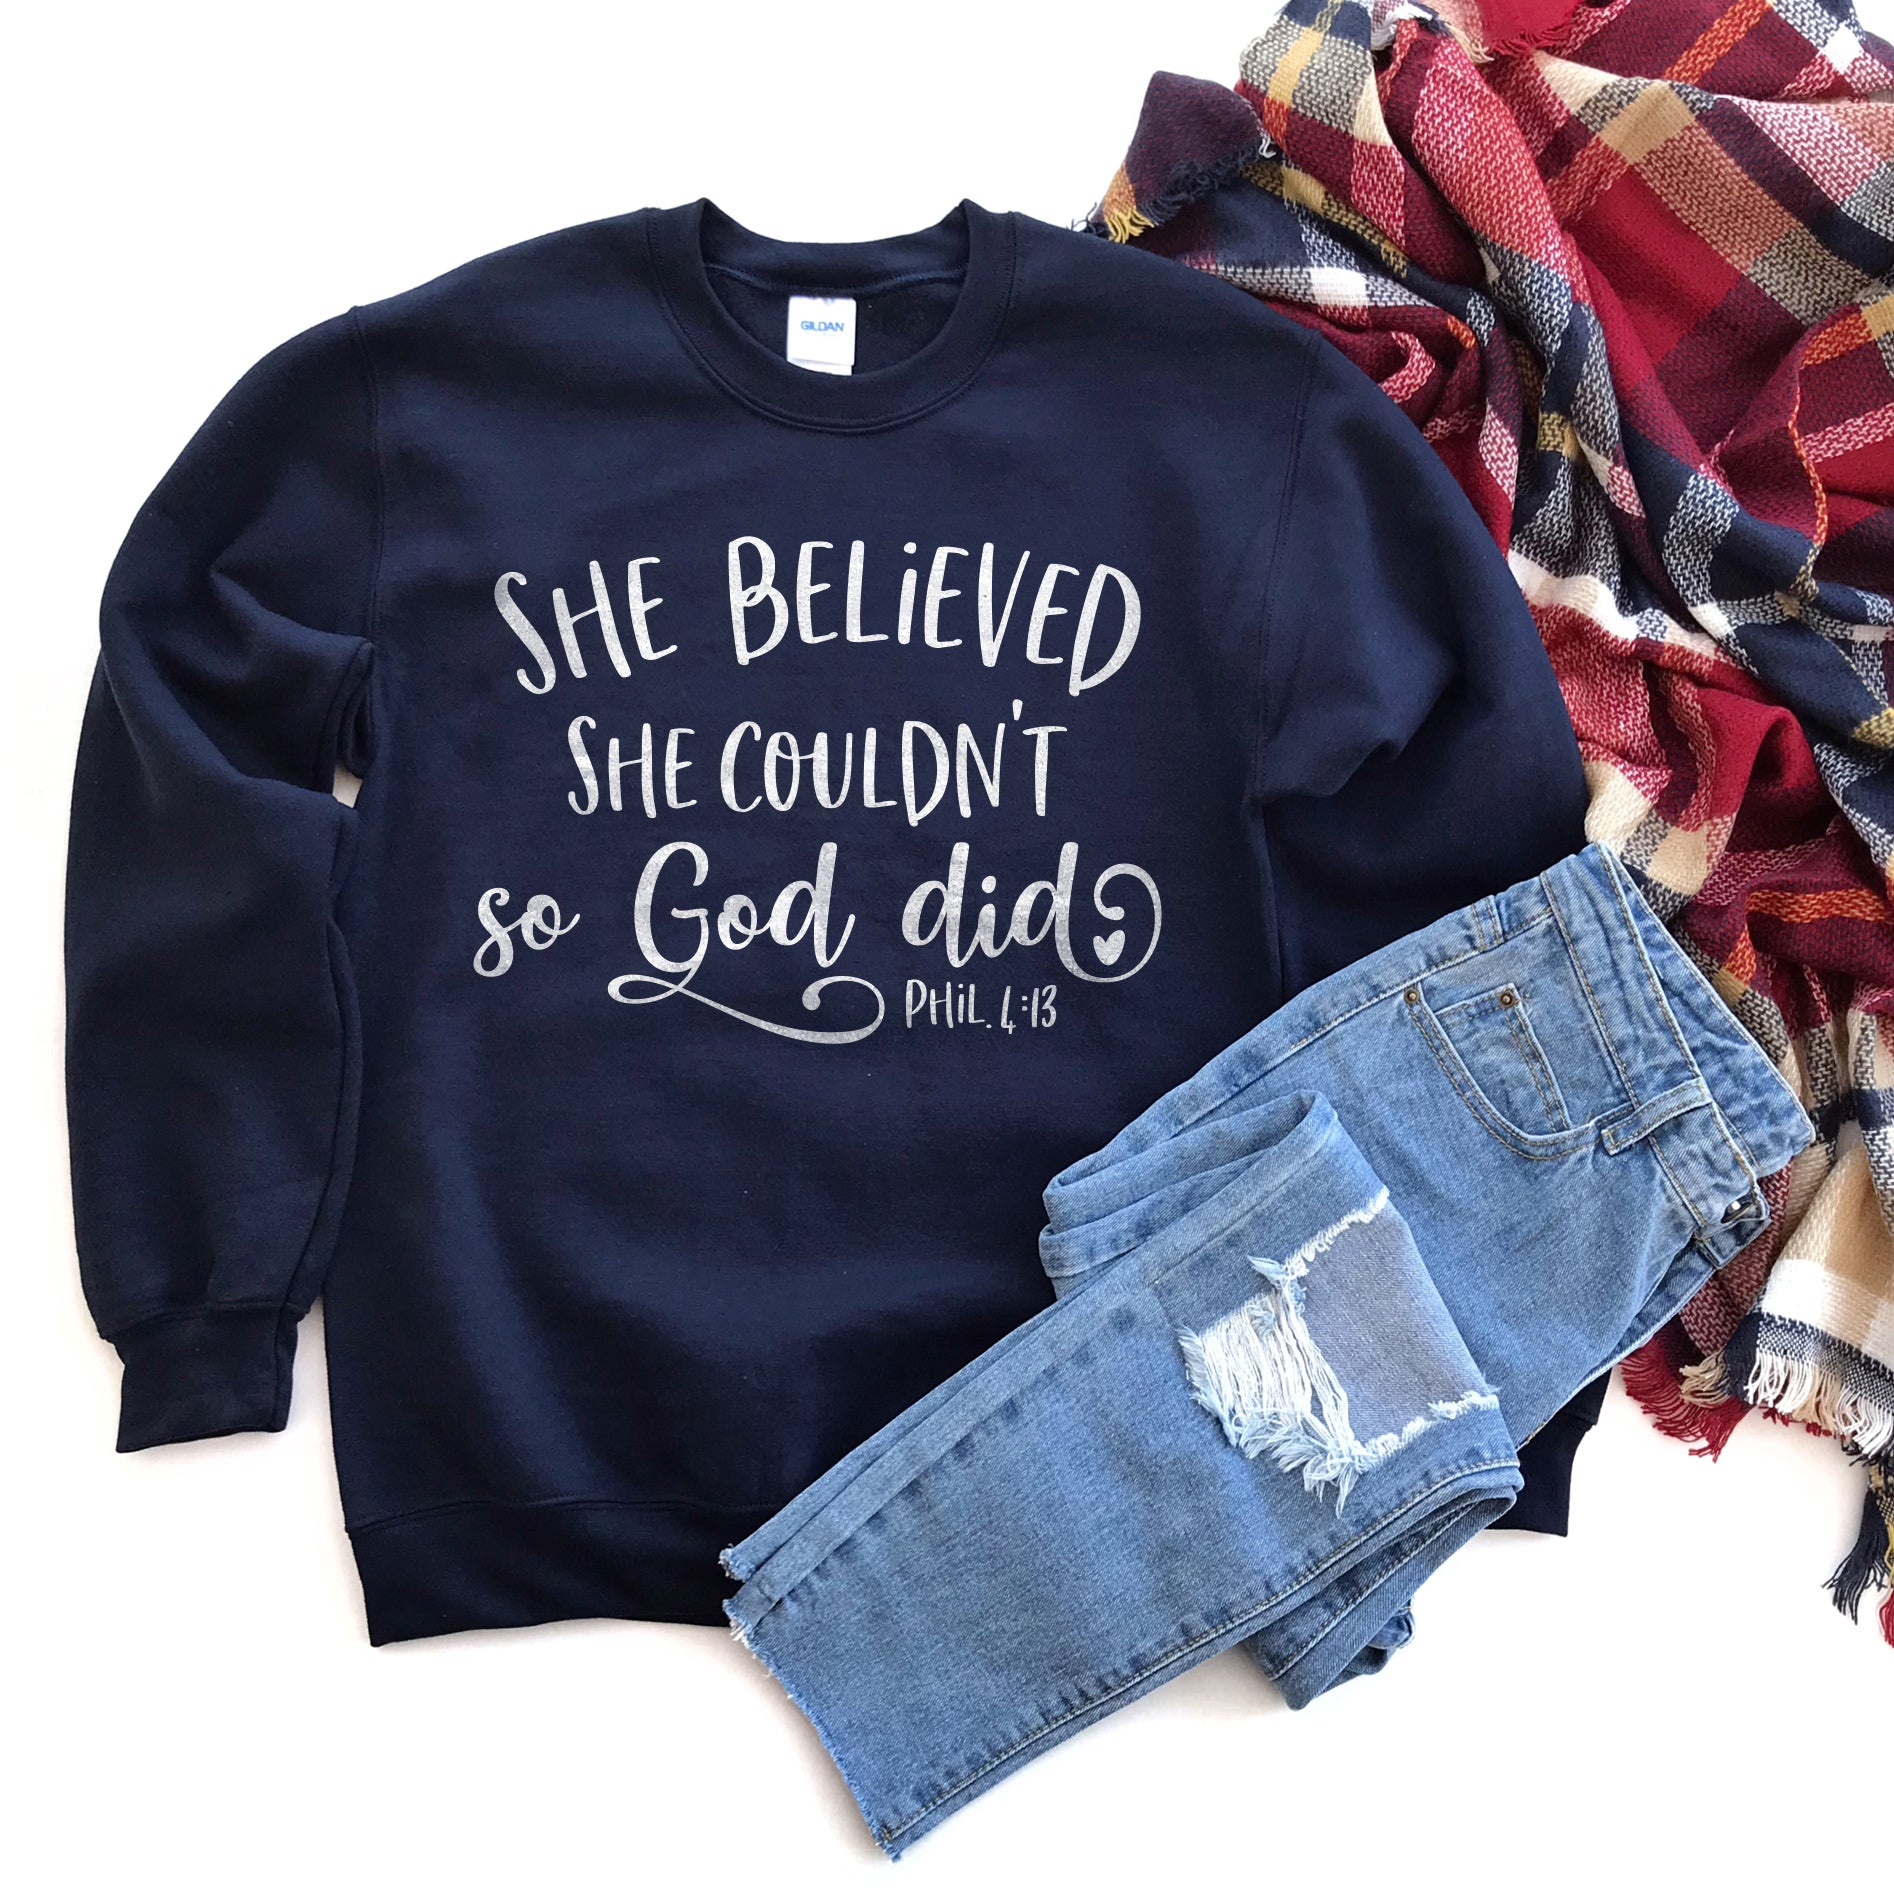 She Believed She Couldn't So God Did Sweatshirt - Bella Faith - Christian Shirts for Women - Women's Faith Based Apparel - Christian Clothing for Women - Christian Jewelry and Gifts for Women - Trendy Christian Tees